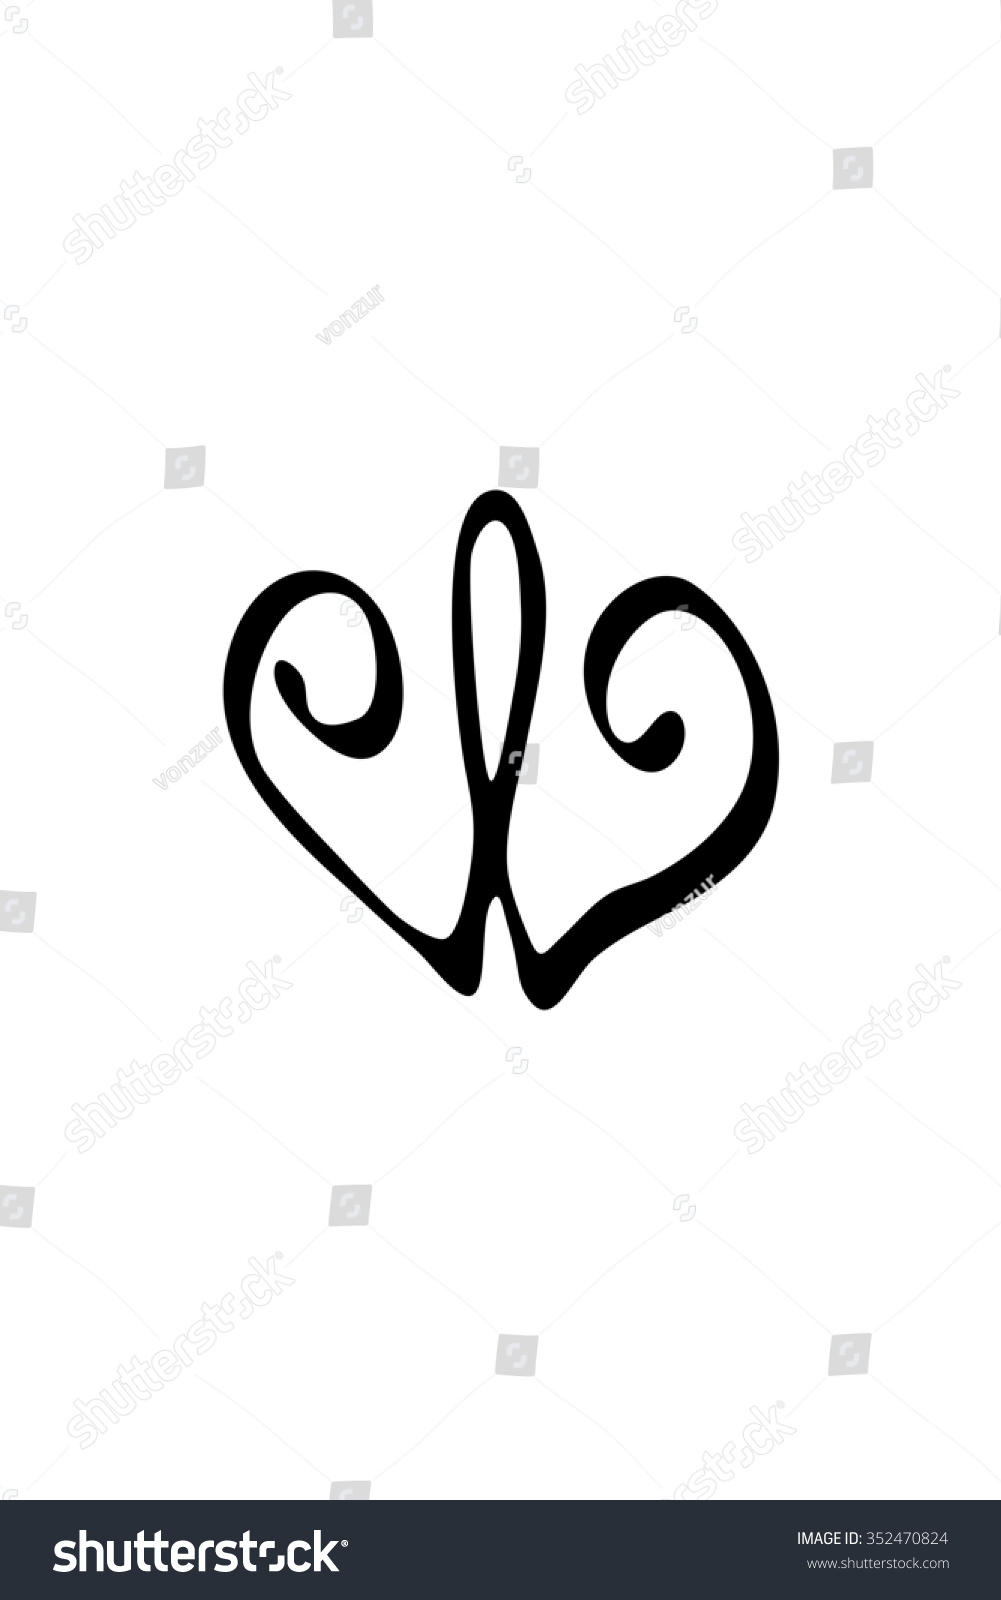 Zibu angelic symbols used connect love stock vector 352470824 zibu angelic symbols used to connect with the love inspiration and healing energy of the biocorpaavc Image collections